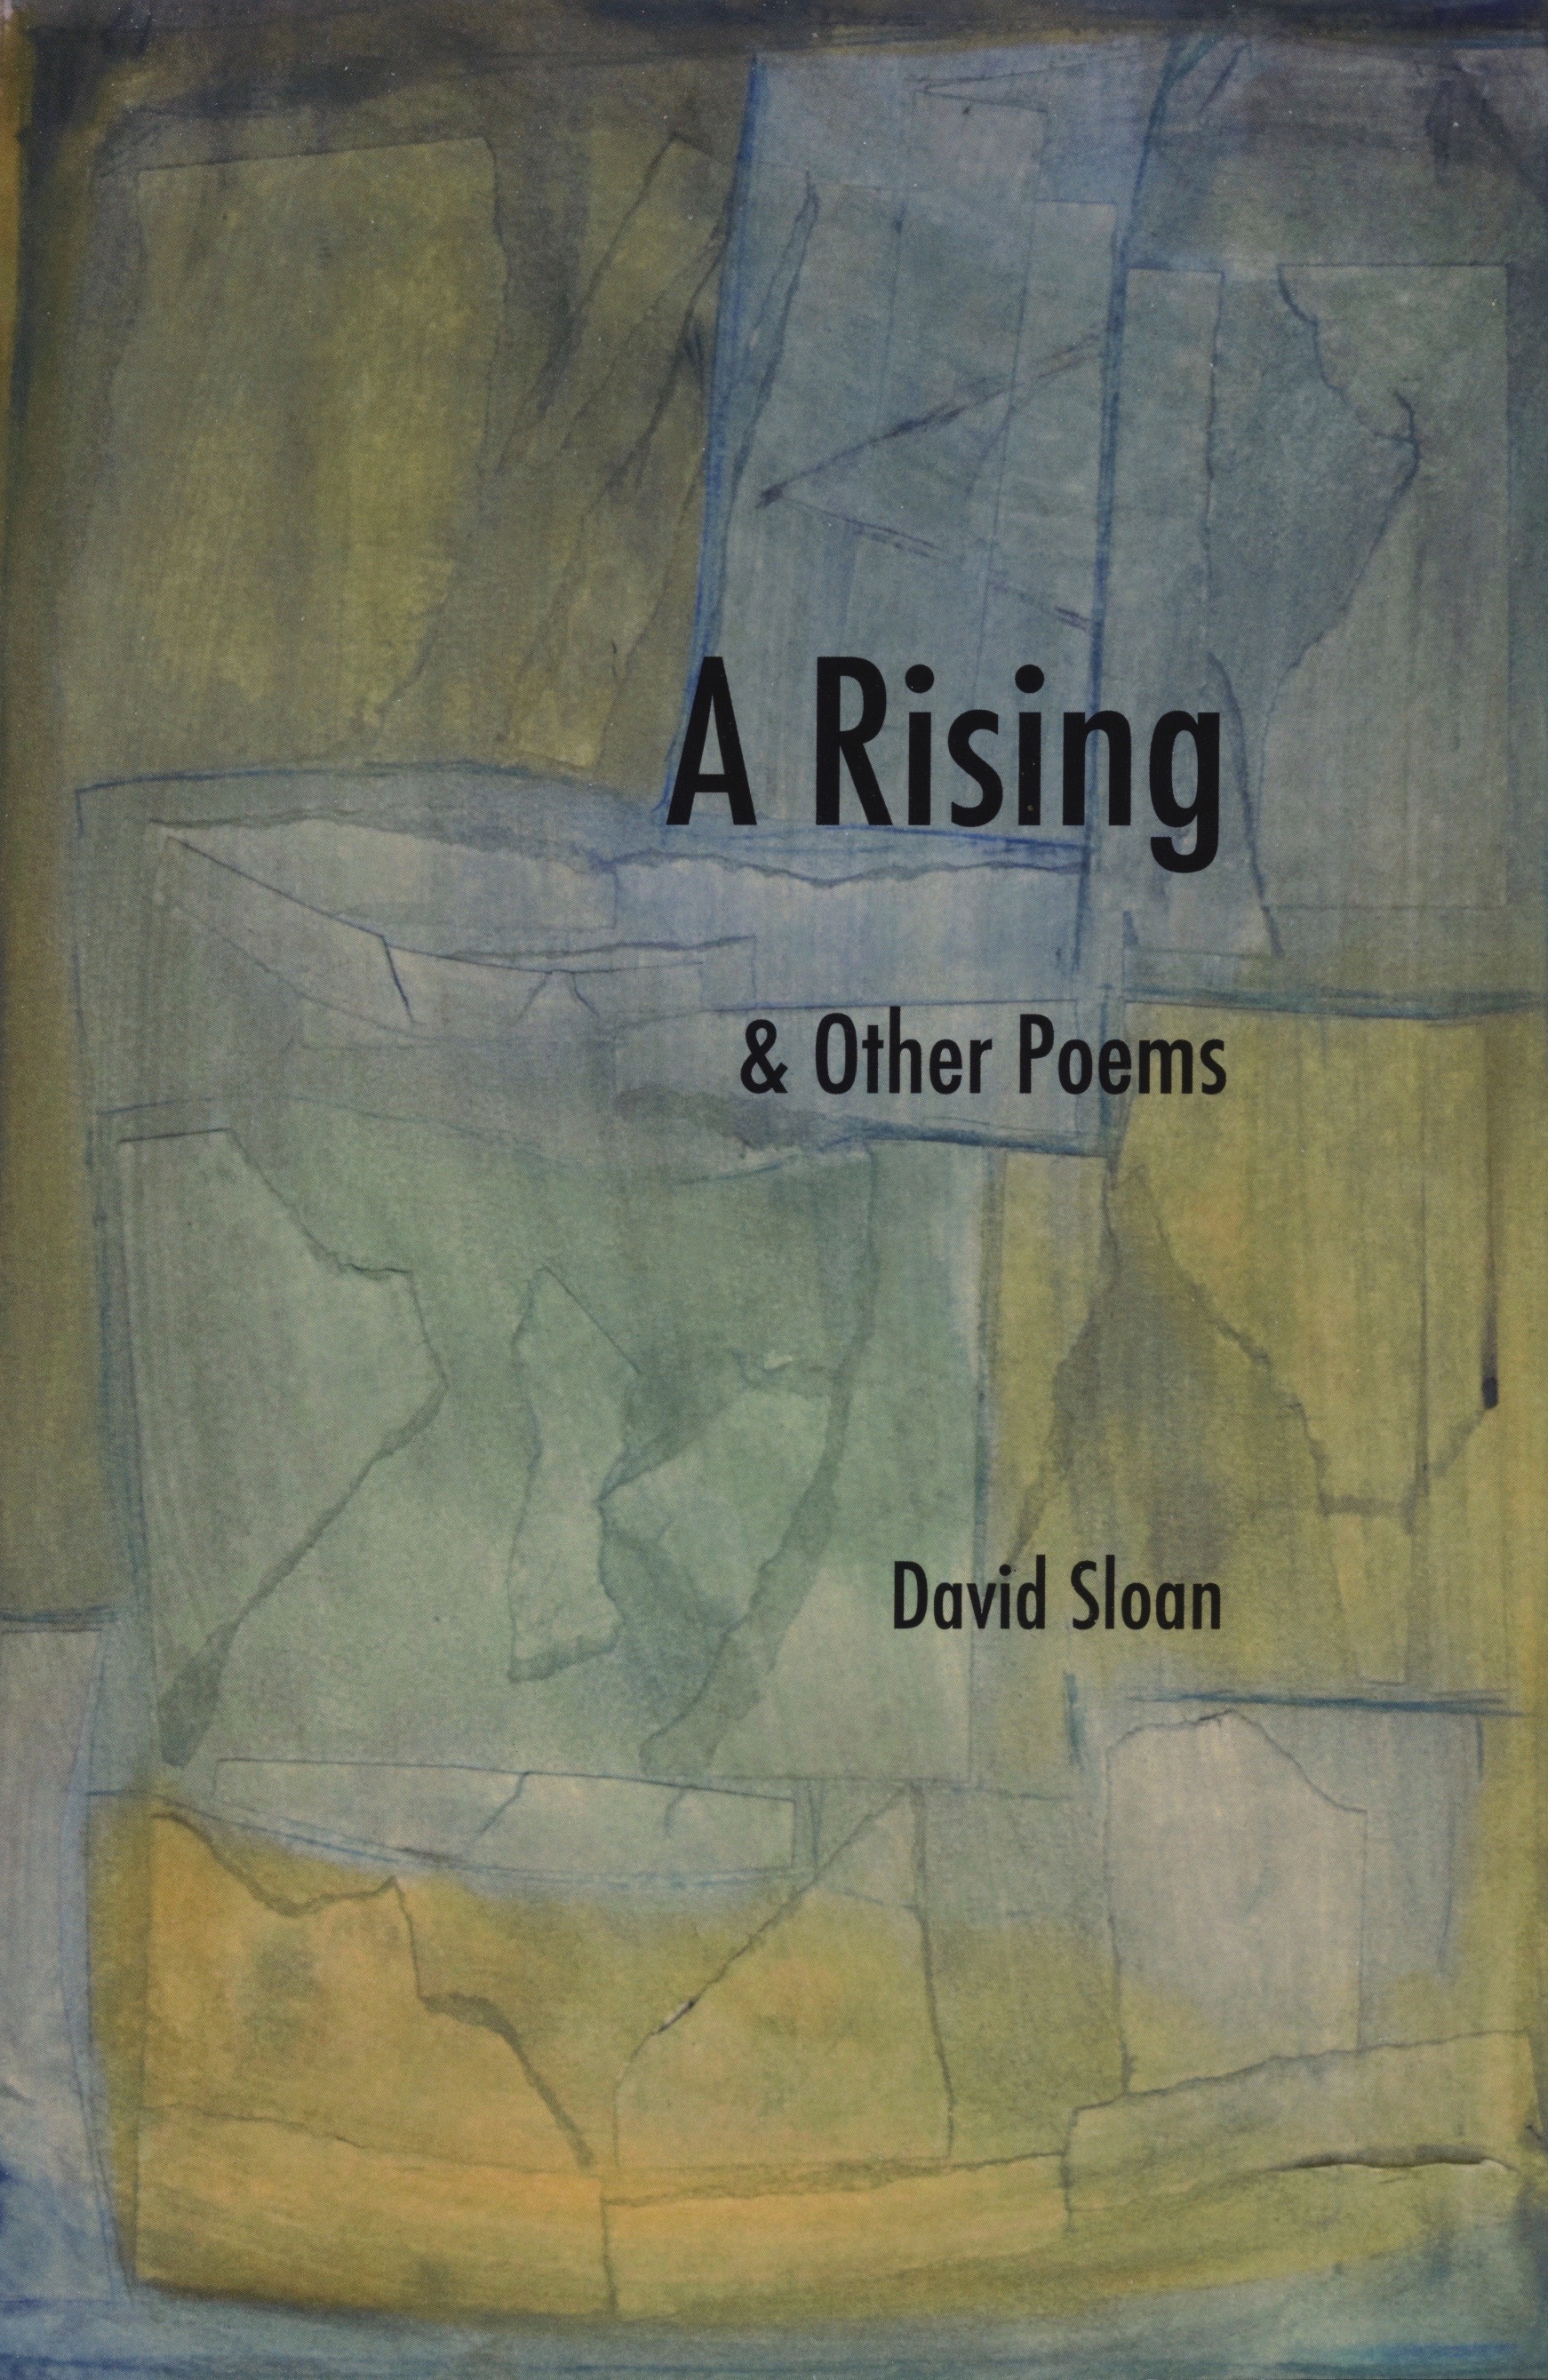 A Rising & Other Poems